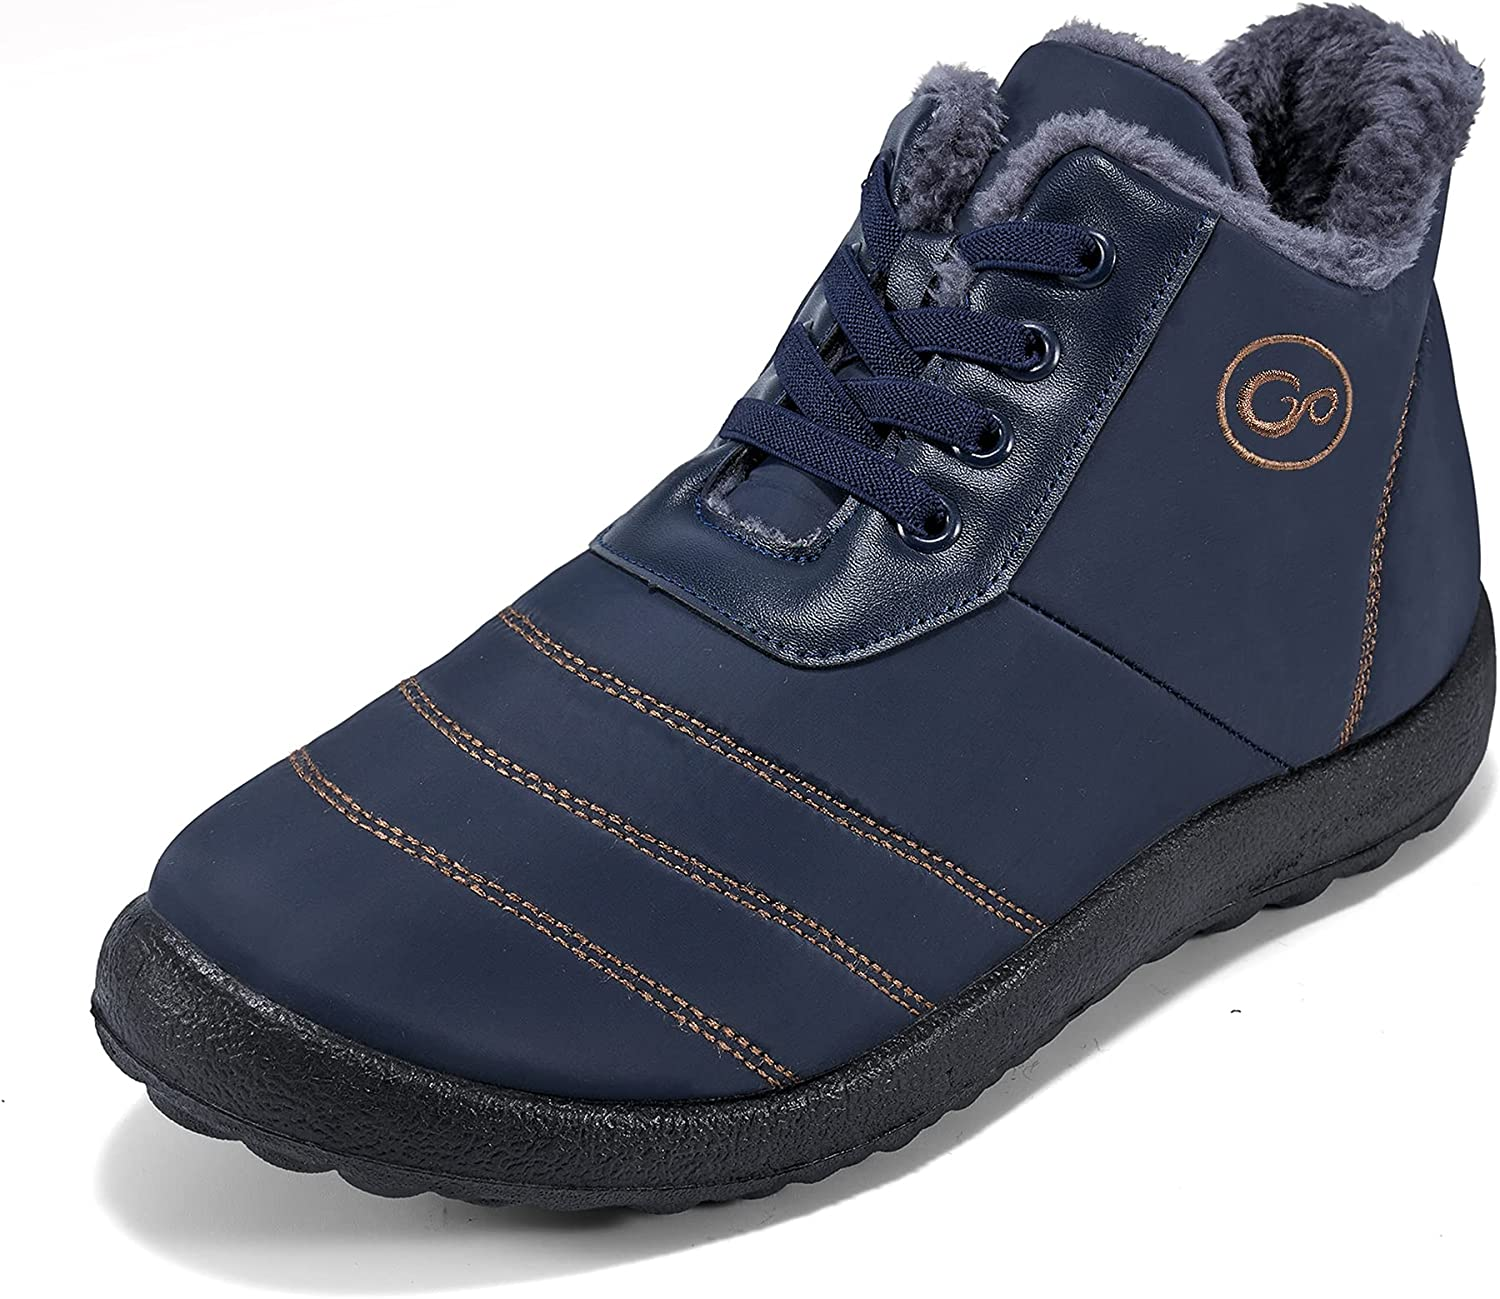 Mens Winter Snow Boots with Warm Lined Fashion Ankle Booties Comfort Fur Oklahoma City Mall